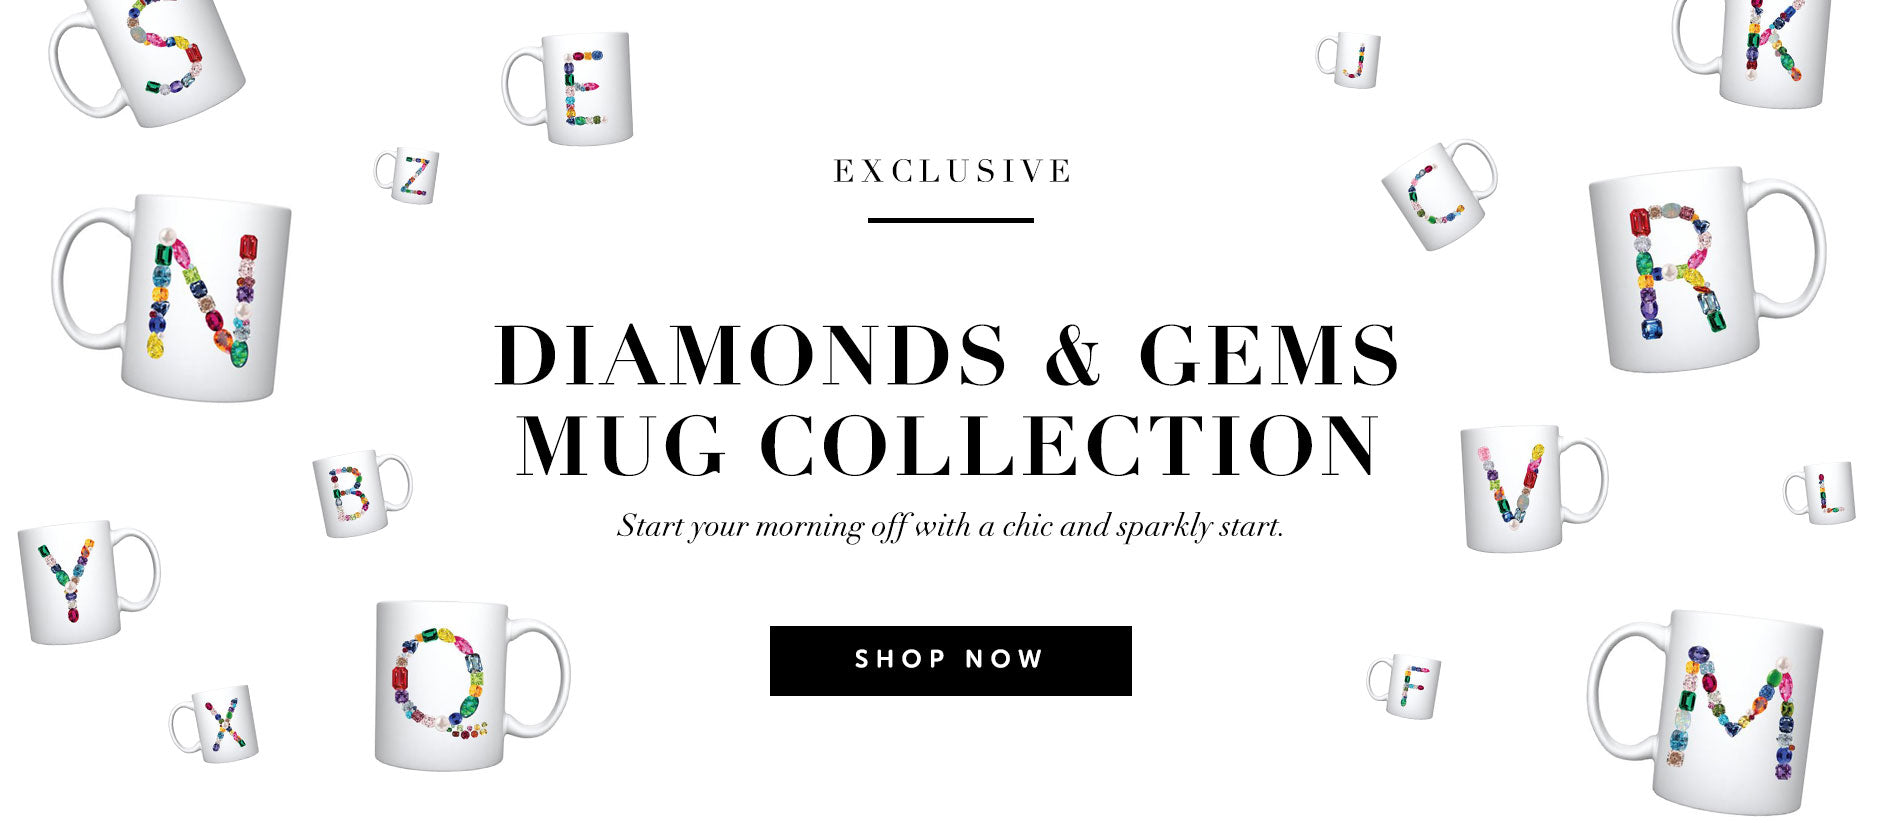 Shop the new Diamonds & Gems Mug Collection from Naly Rice